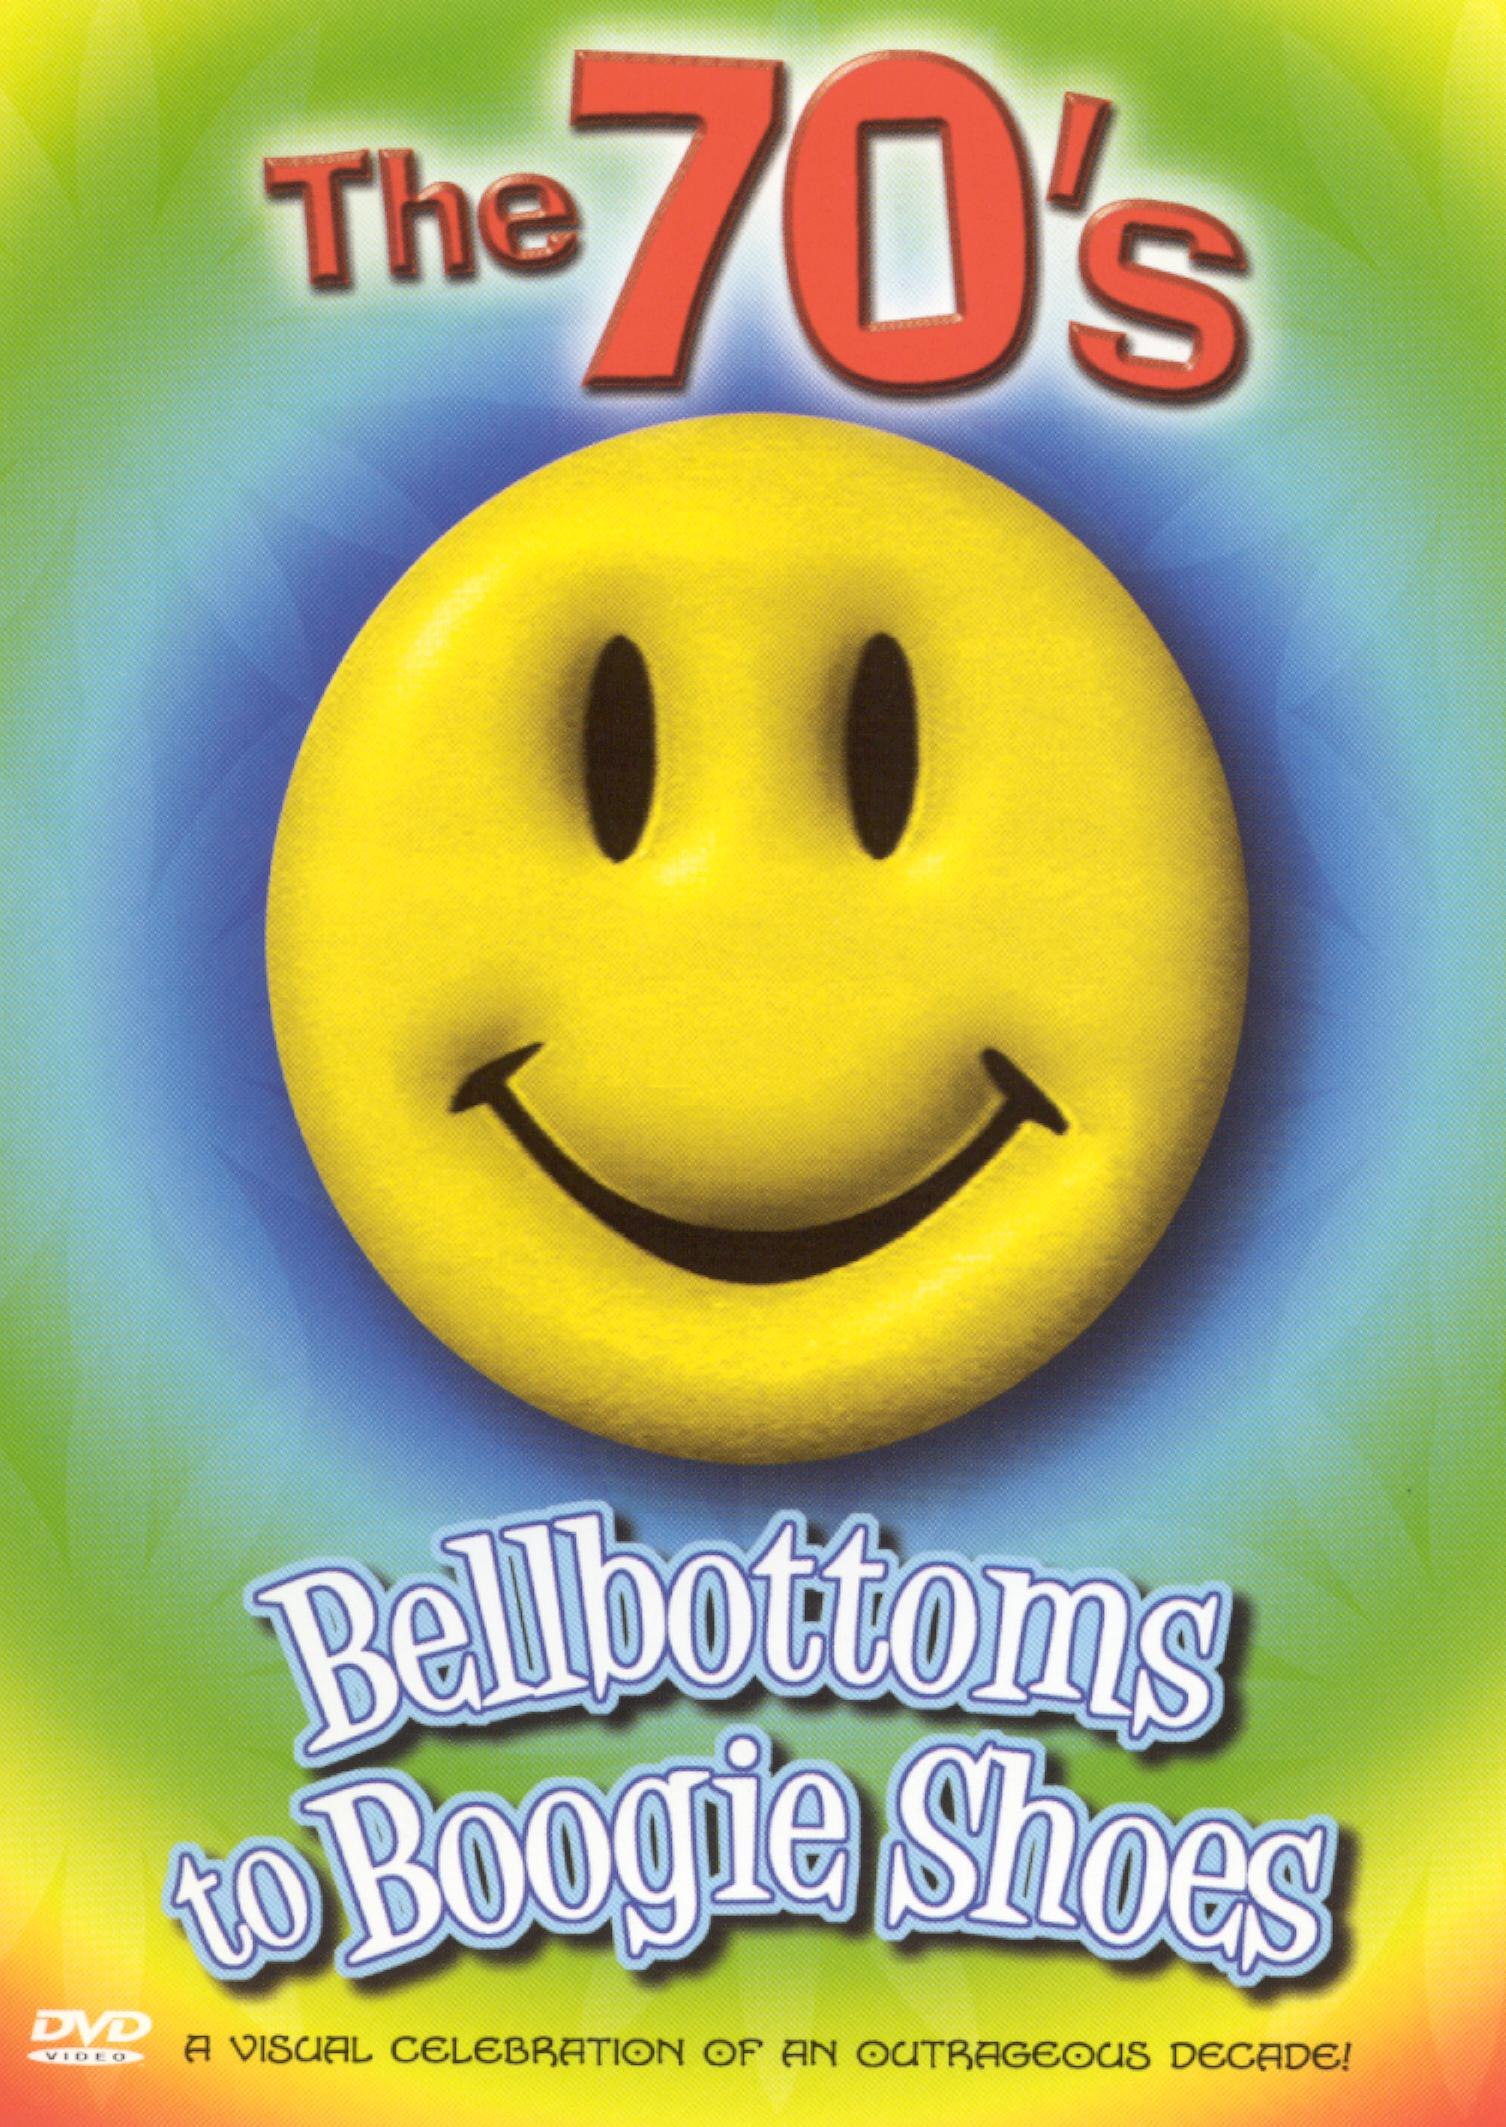 Bellbottoms and Boogie Shoes